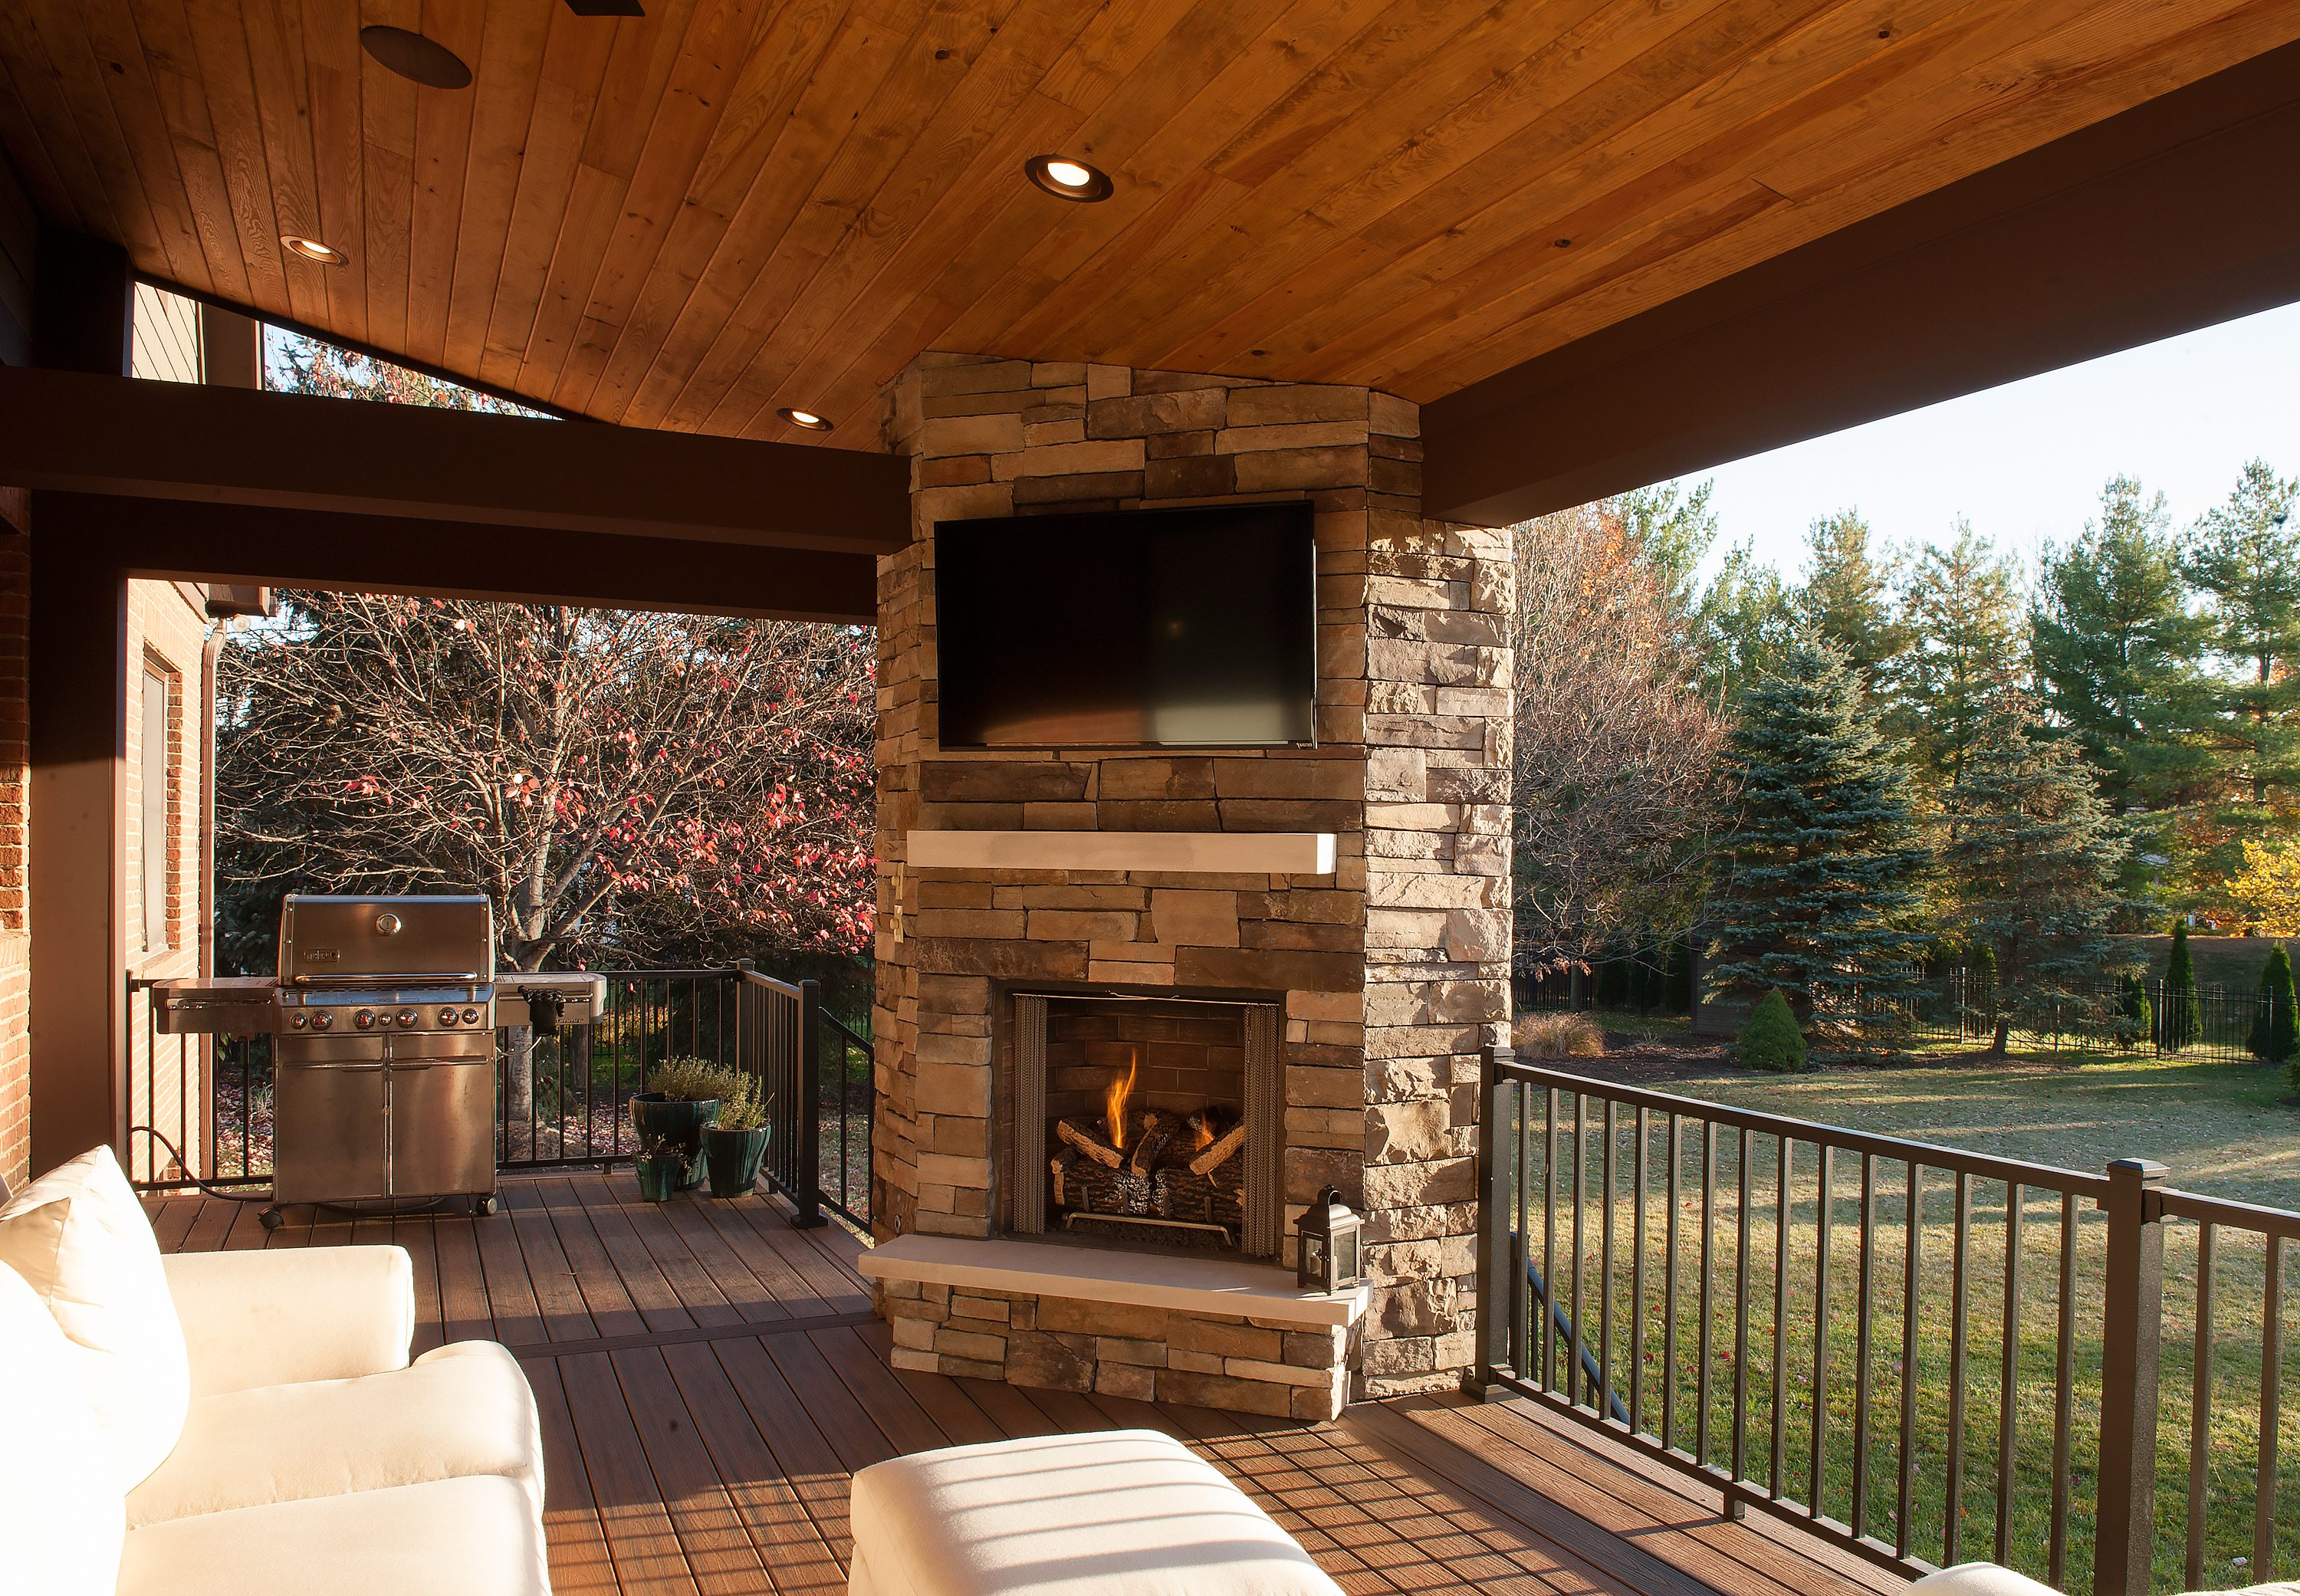 Outdoor Living All Year | Case Indy on Doobz Outdoor Living id=98964